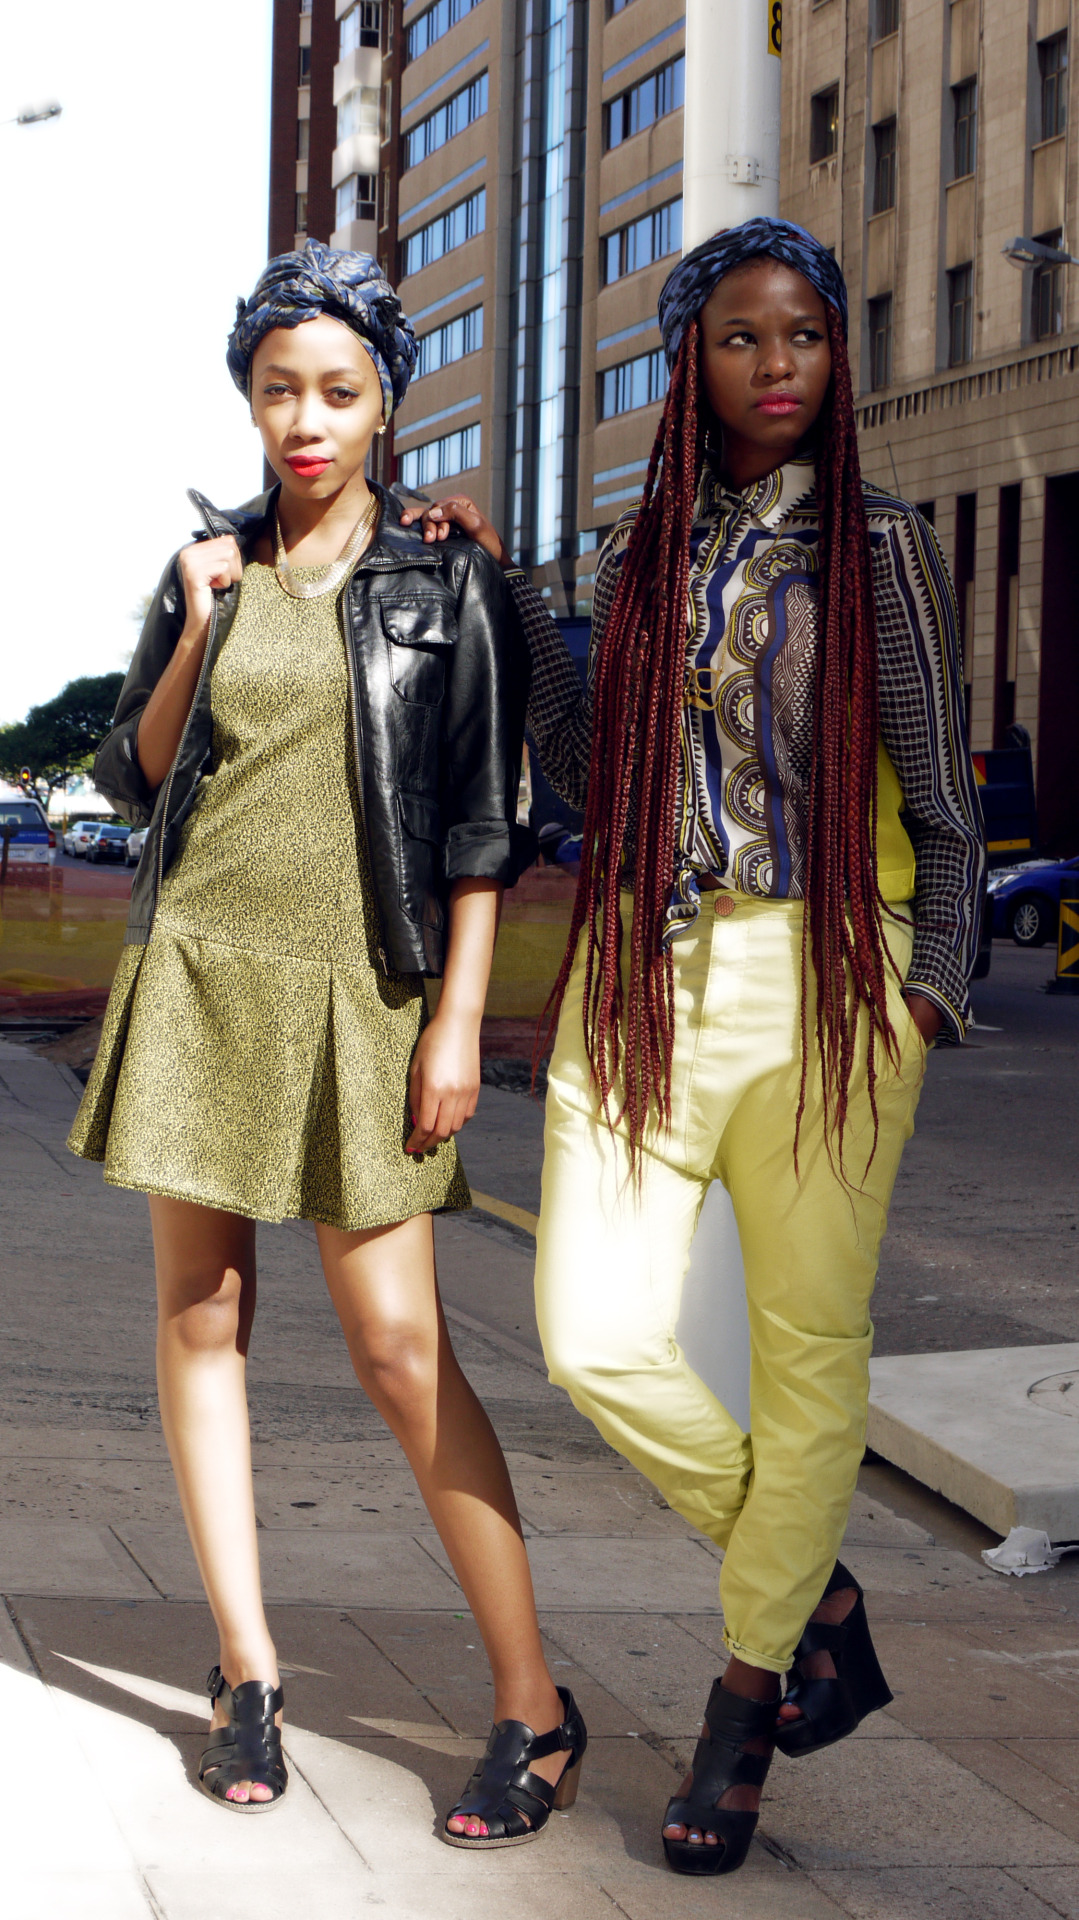 blackfashion:    DURBAN WINTER stylist: Selloane (BLKPEACH)photographer: ThandaModels: Teniel x SelloaneClothes: stylist + Model ownedlocation: Durban, South Africa #WinterTrends #PrintedTurbans #Gold #RedLips #pinkLips #winterdress #LeatherJacket #BrightChinos #PrintedSheerShirt